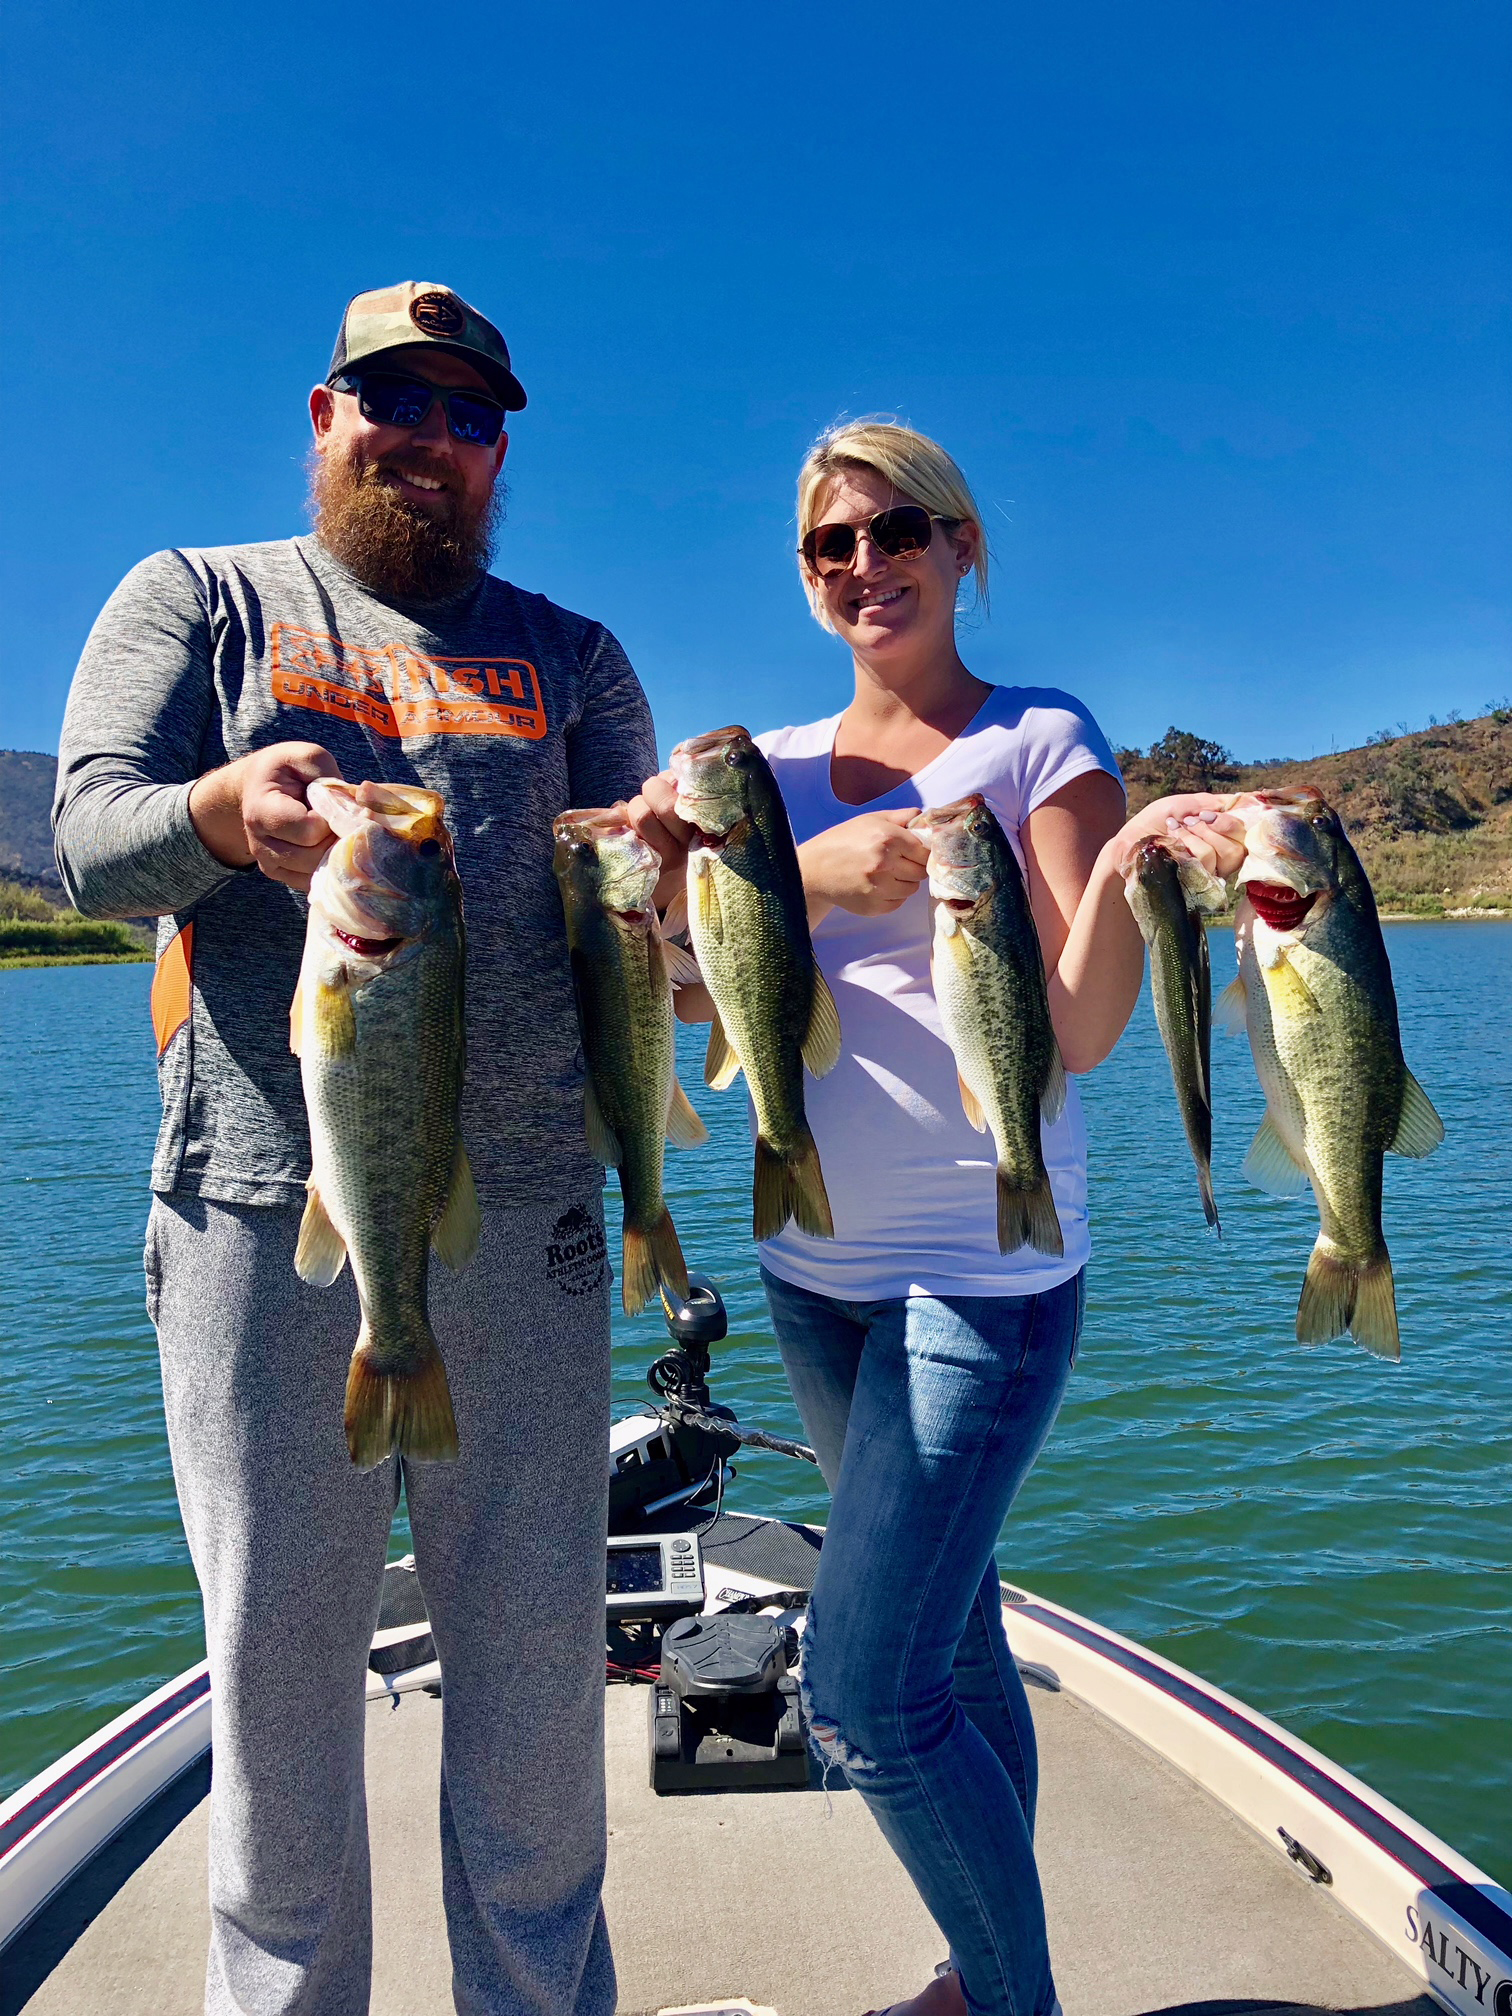 Lake Casitas Fishing Guide 09/18/2018